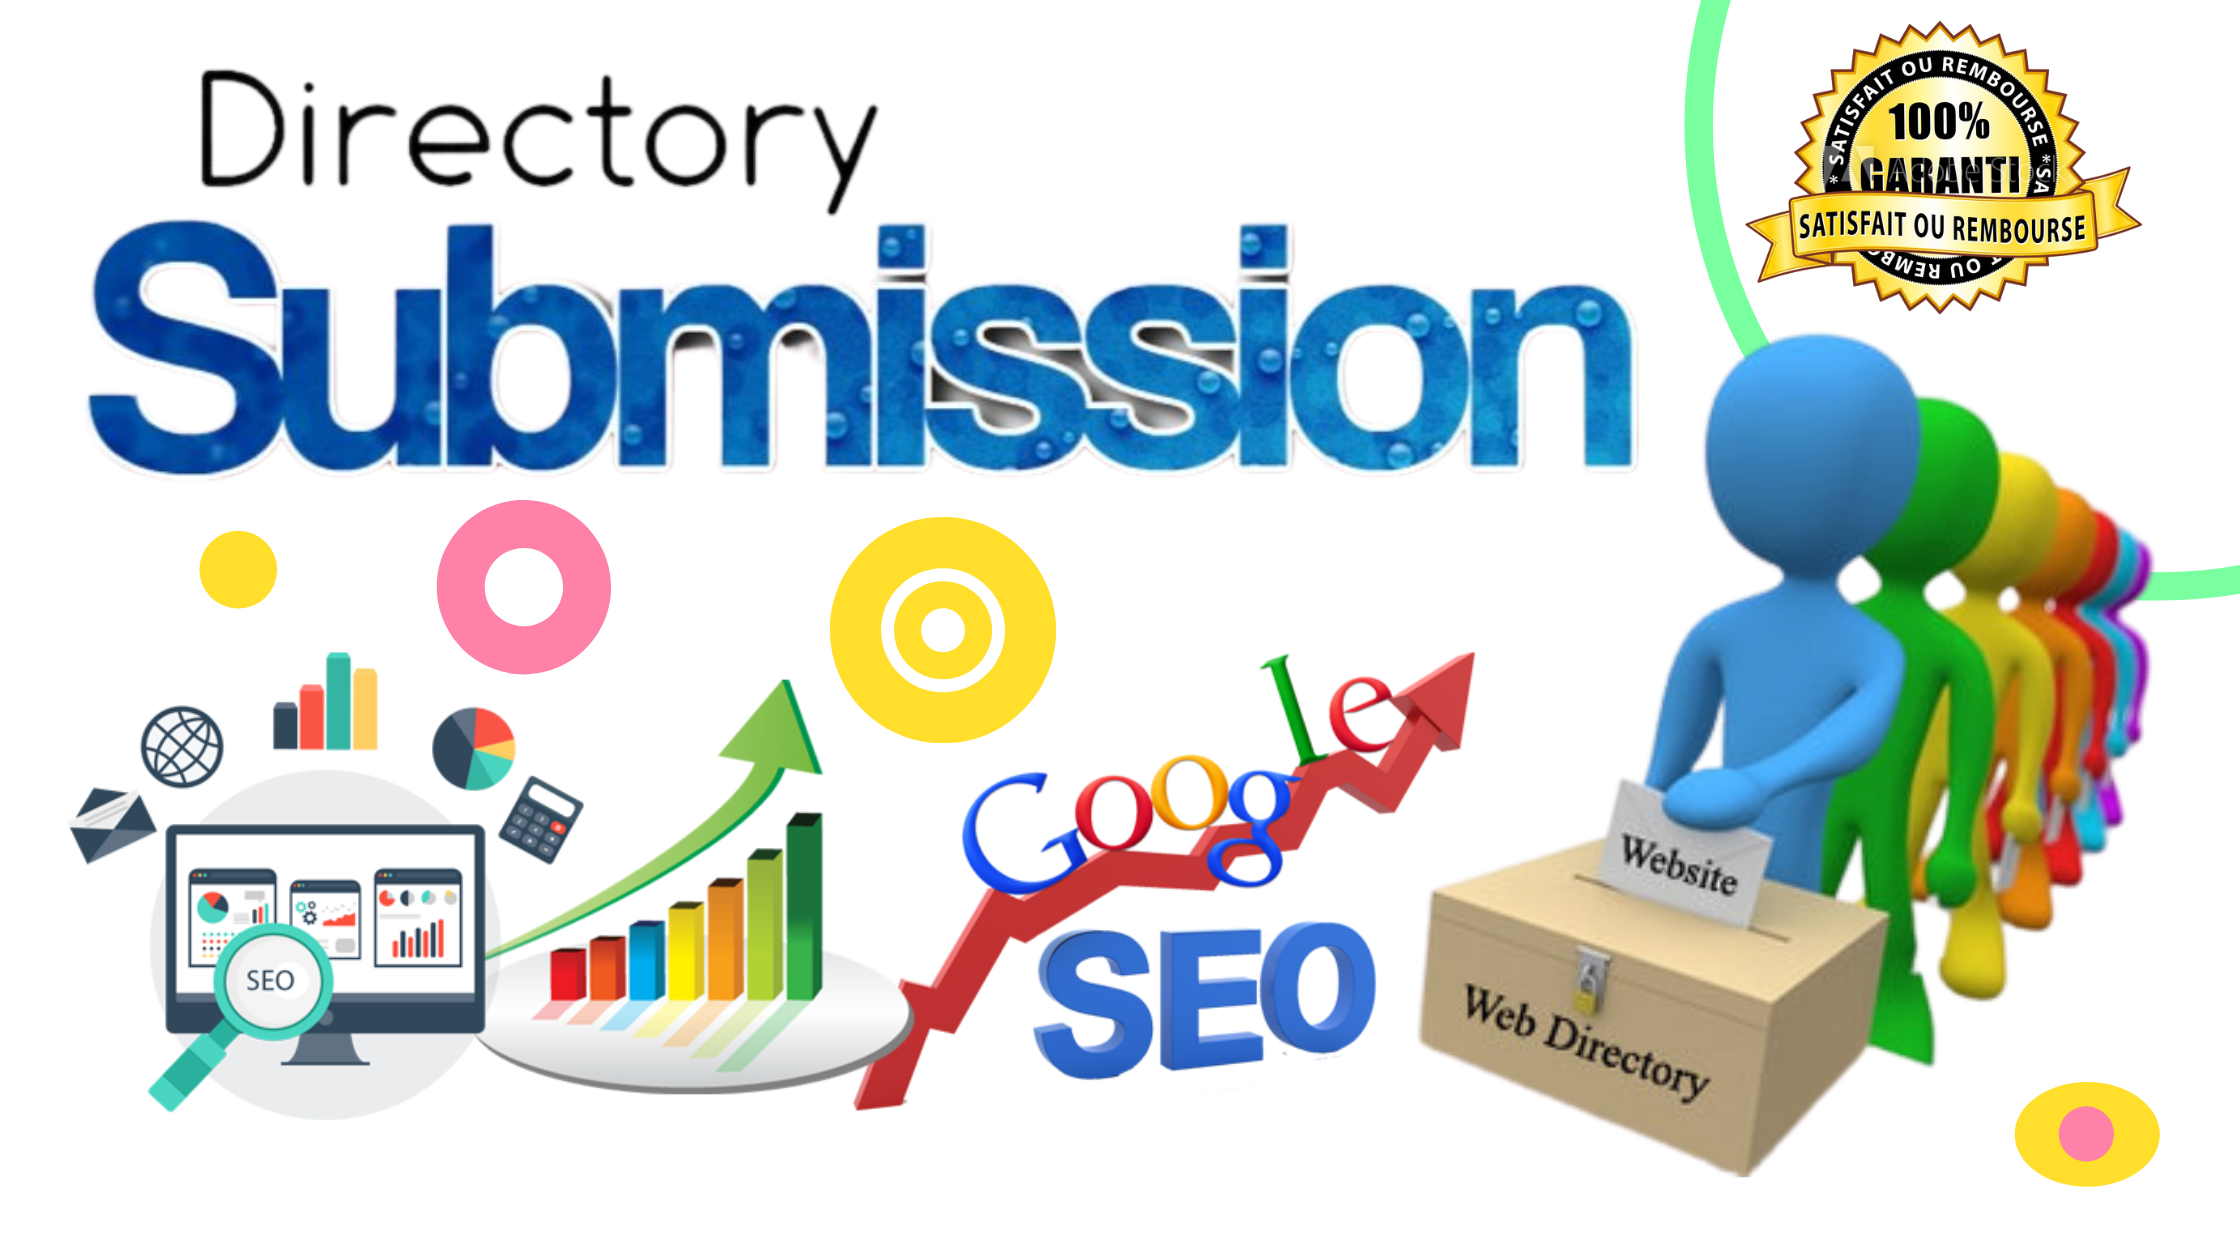 I will provide 200 directory submission SEO backlinks